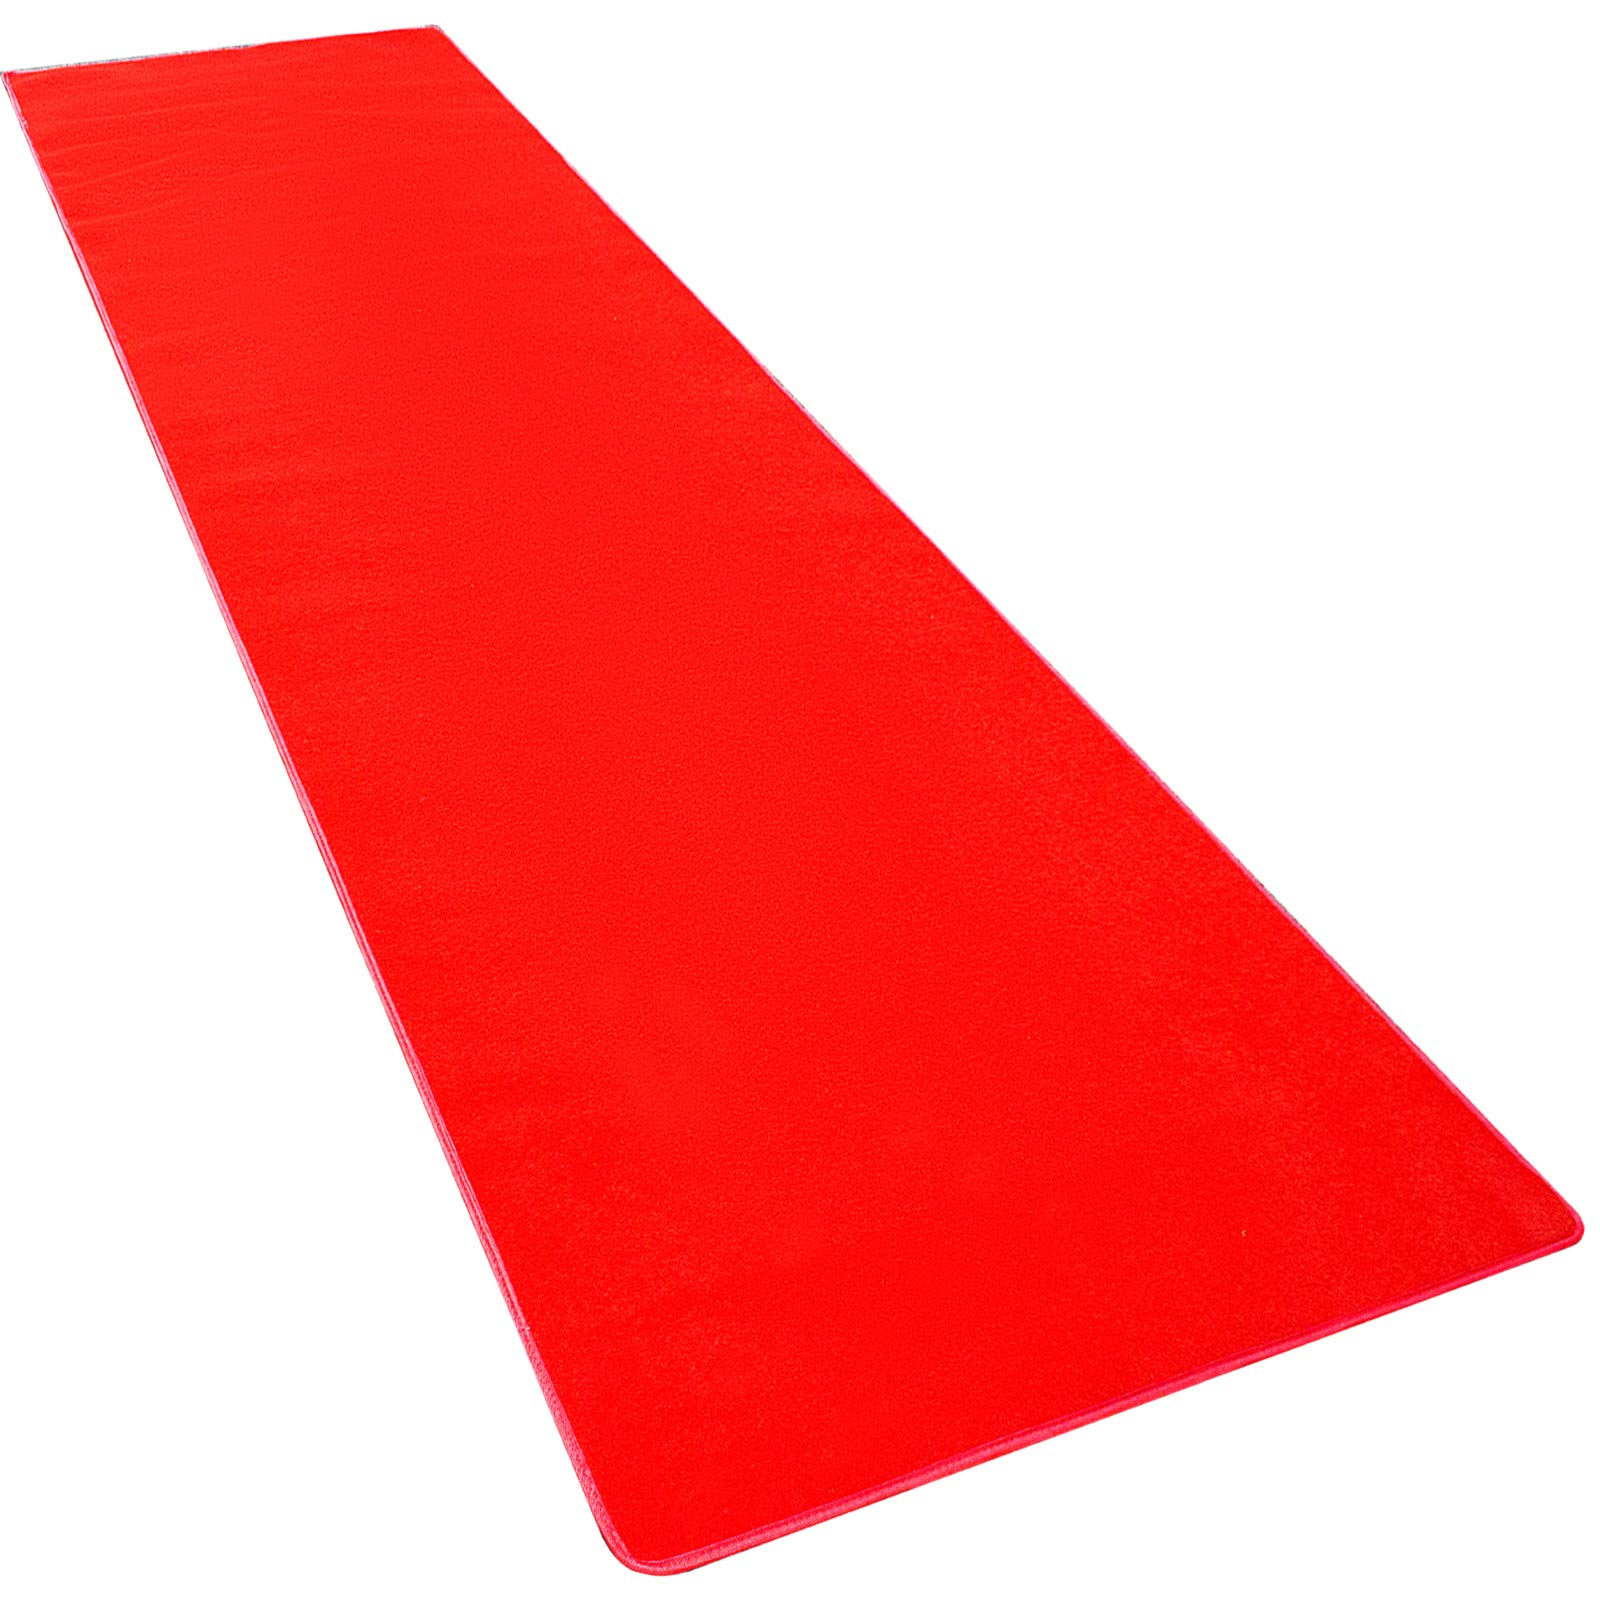 Happybuy 3.3Ft X 13Ft Large Red Carpet Runner Rug Solid TRP Rubber Backed Hollywood Runner Carpet Non-Slip Stair Patio Party Decor Wedding 1M X 4M Aisle Floor Runner Rug - Various Sizes (Red, 3x13Ft)